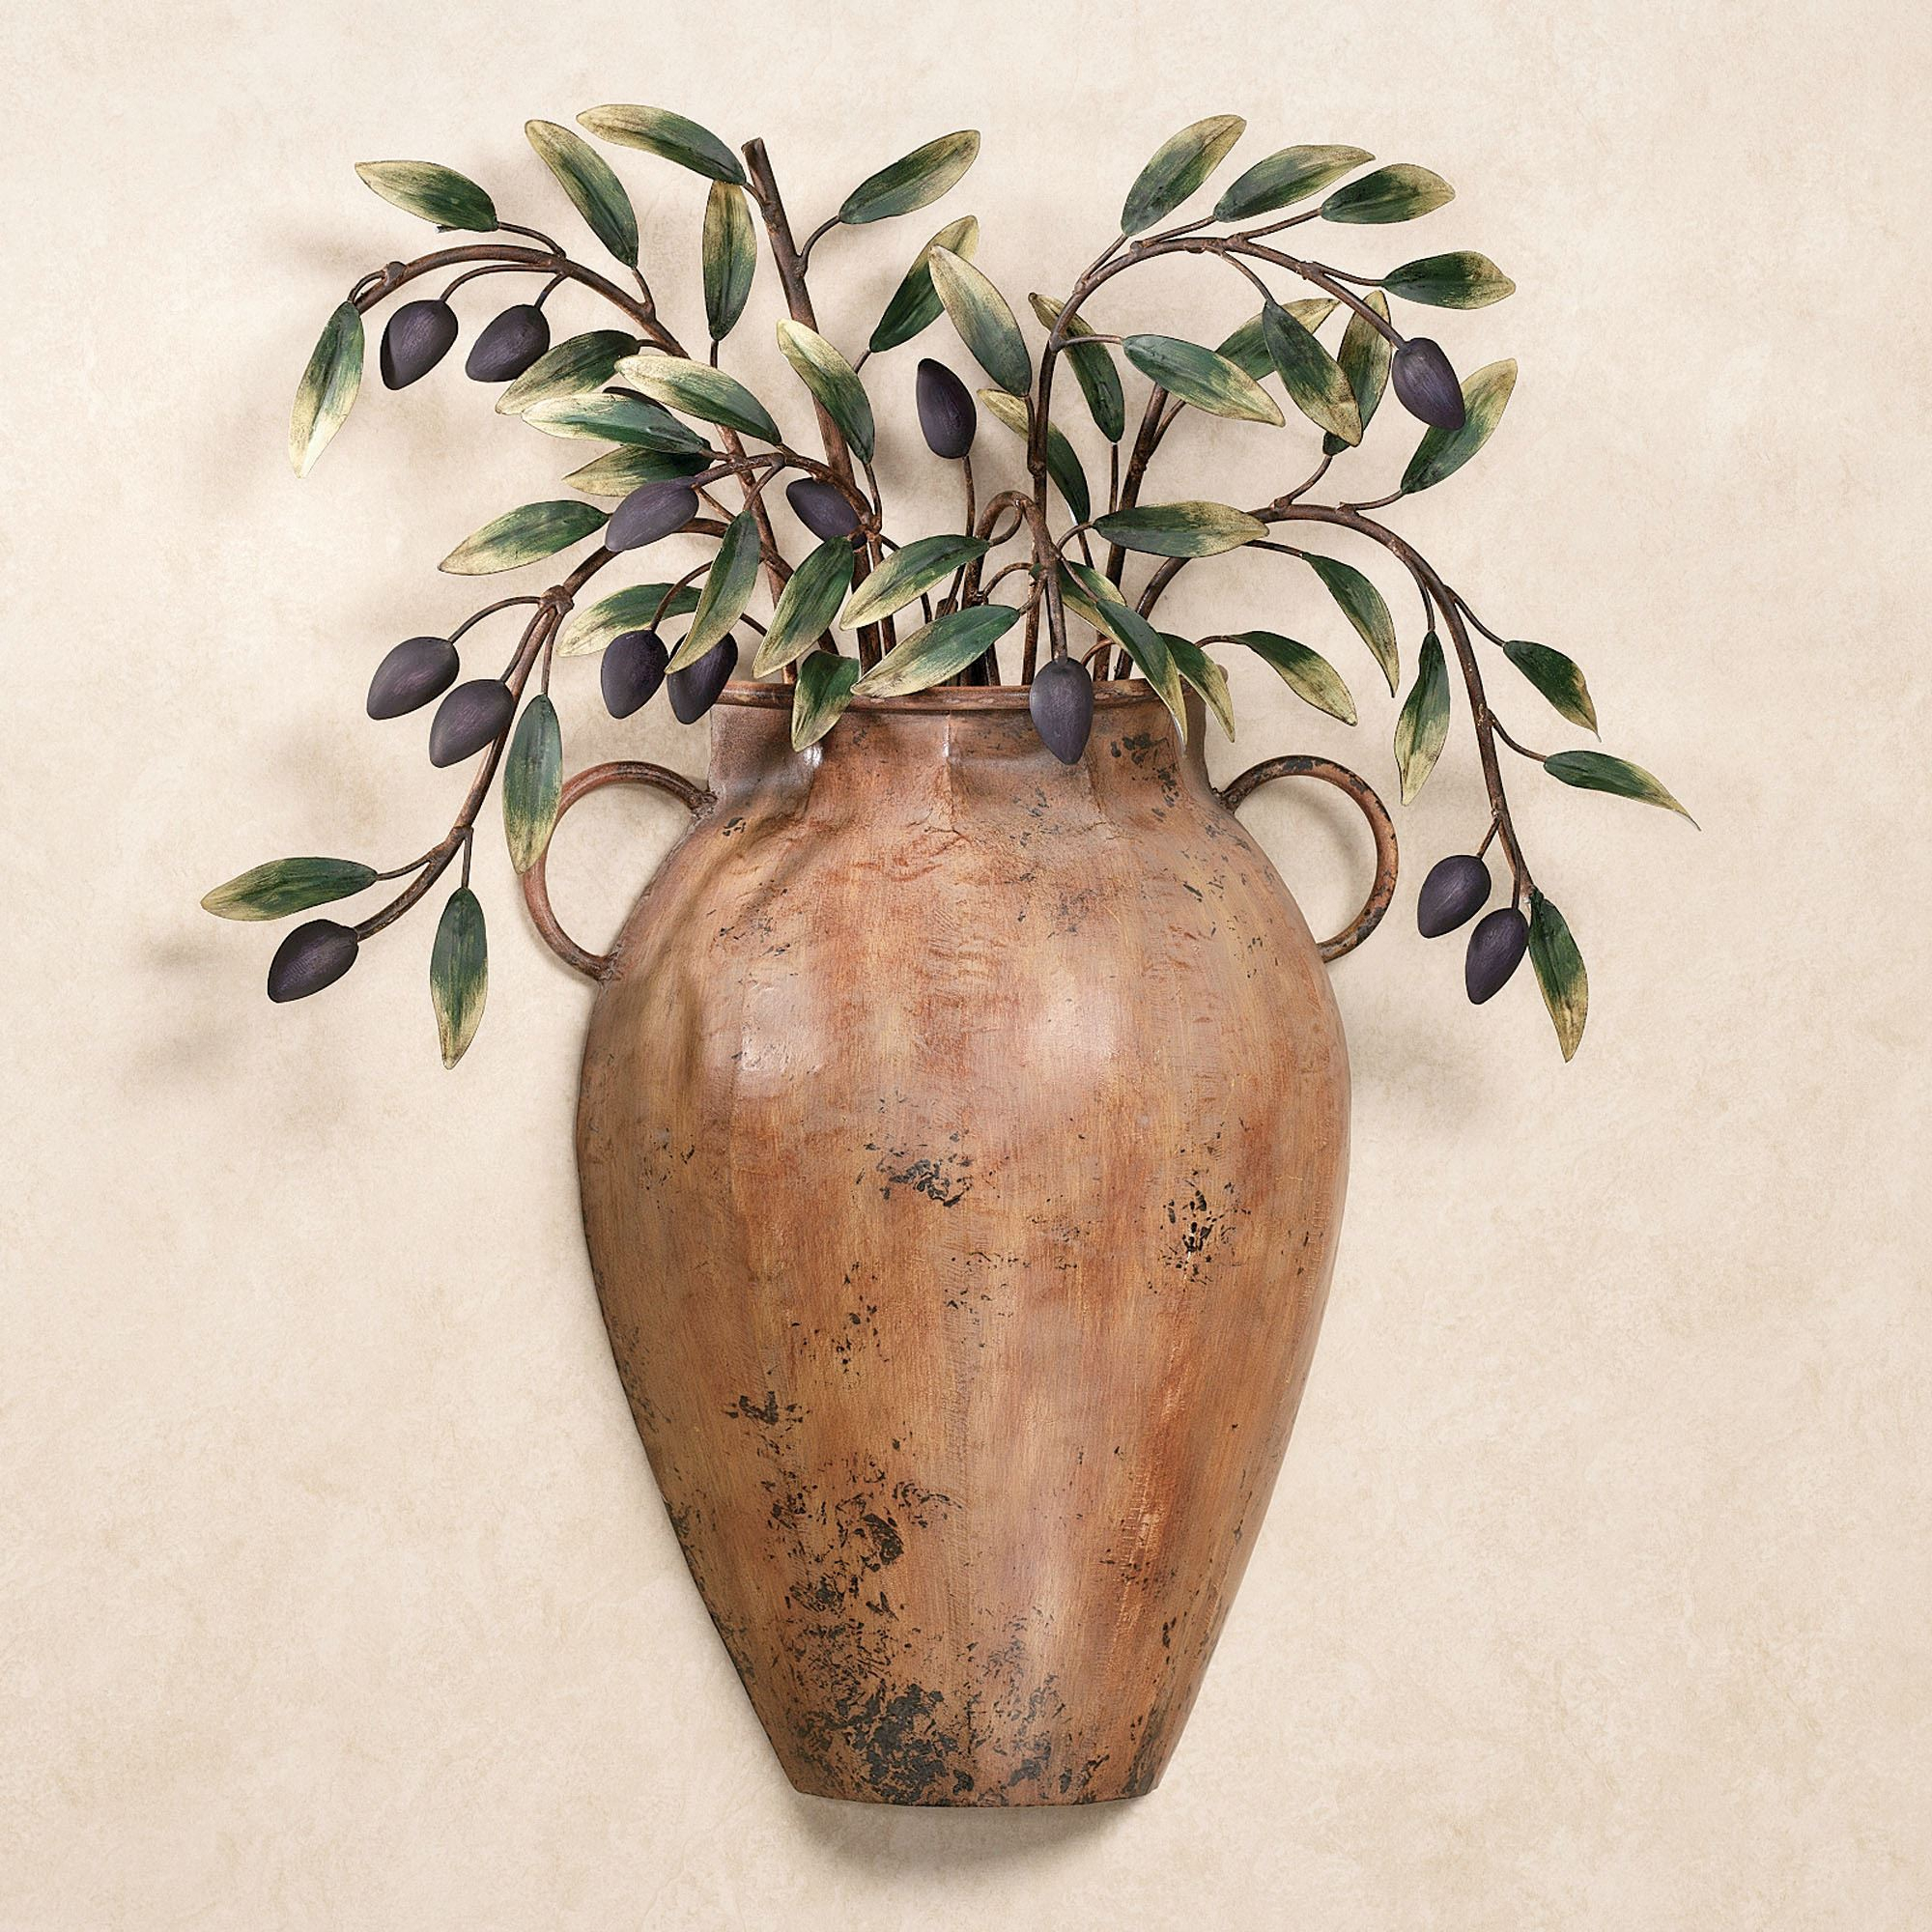 Valetta Vaso Con Olives Metal Wall Sculpture For Scattered Metal Italian Plates Wall Decor (View 18 of 30)